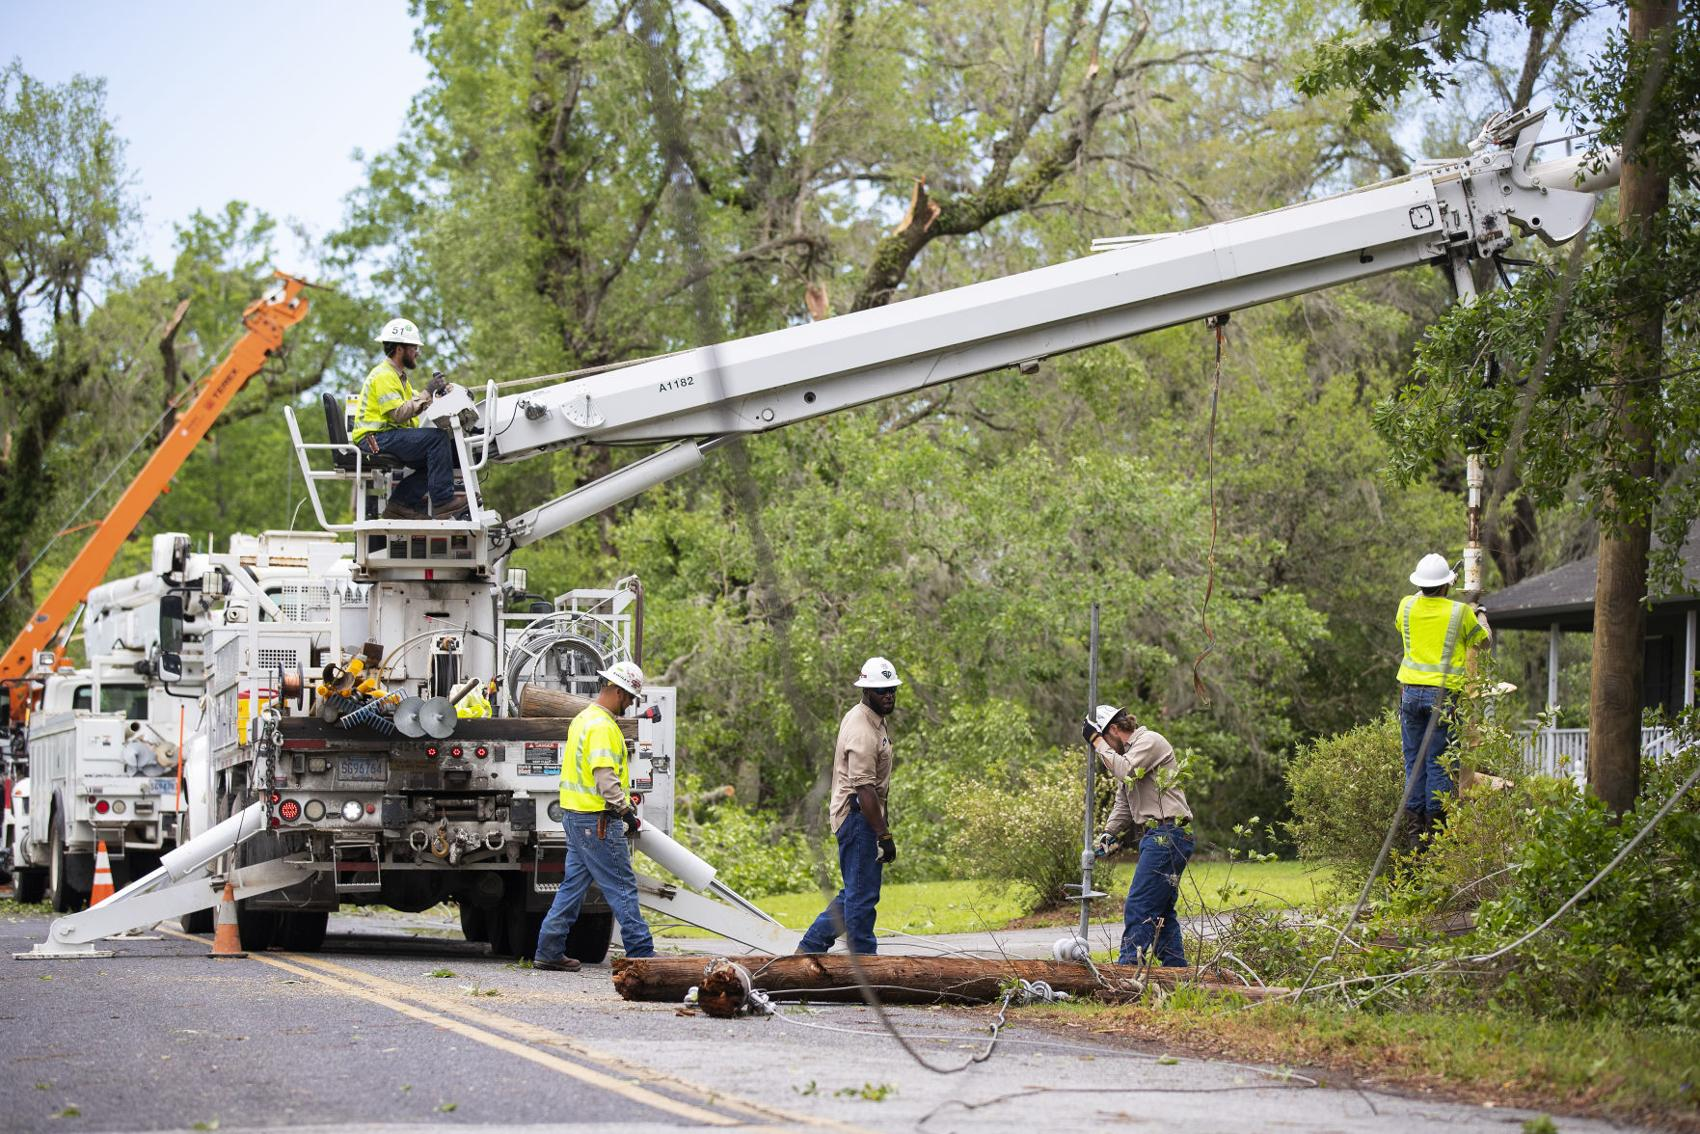 POST AND COURIER – Demand for electricity in SC drops during pandemic and economic slowdown